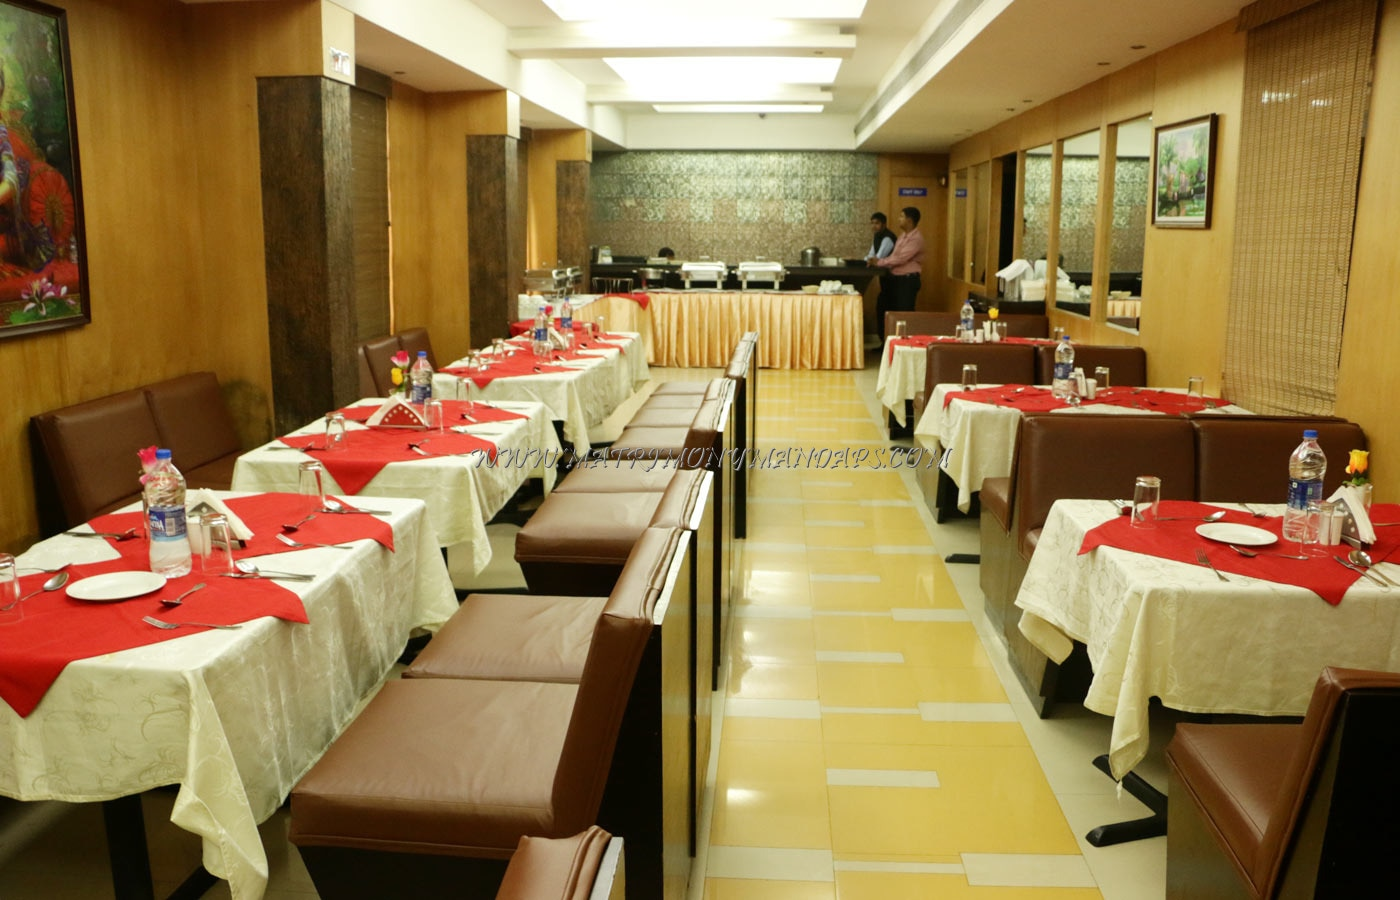 Find the availability of the Pattom Royal Hotel Royal Banquet Hall 2 (A/C) in Pattom, Trivandrum and avail special offers